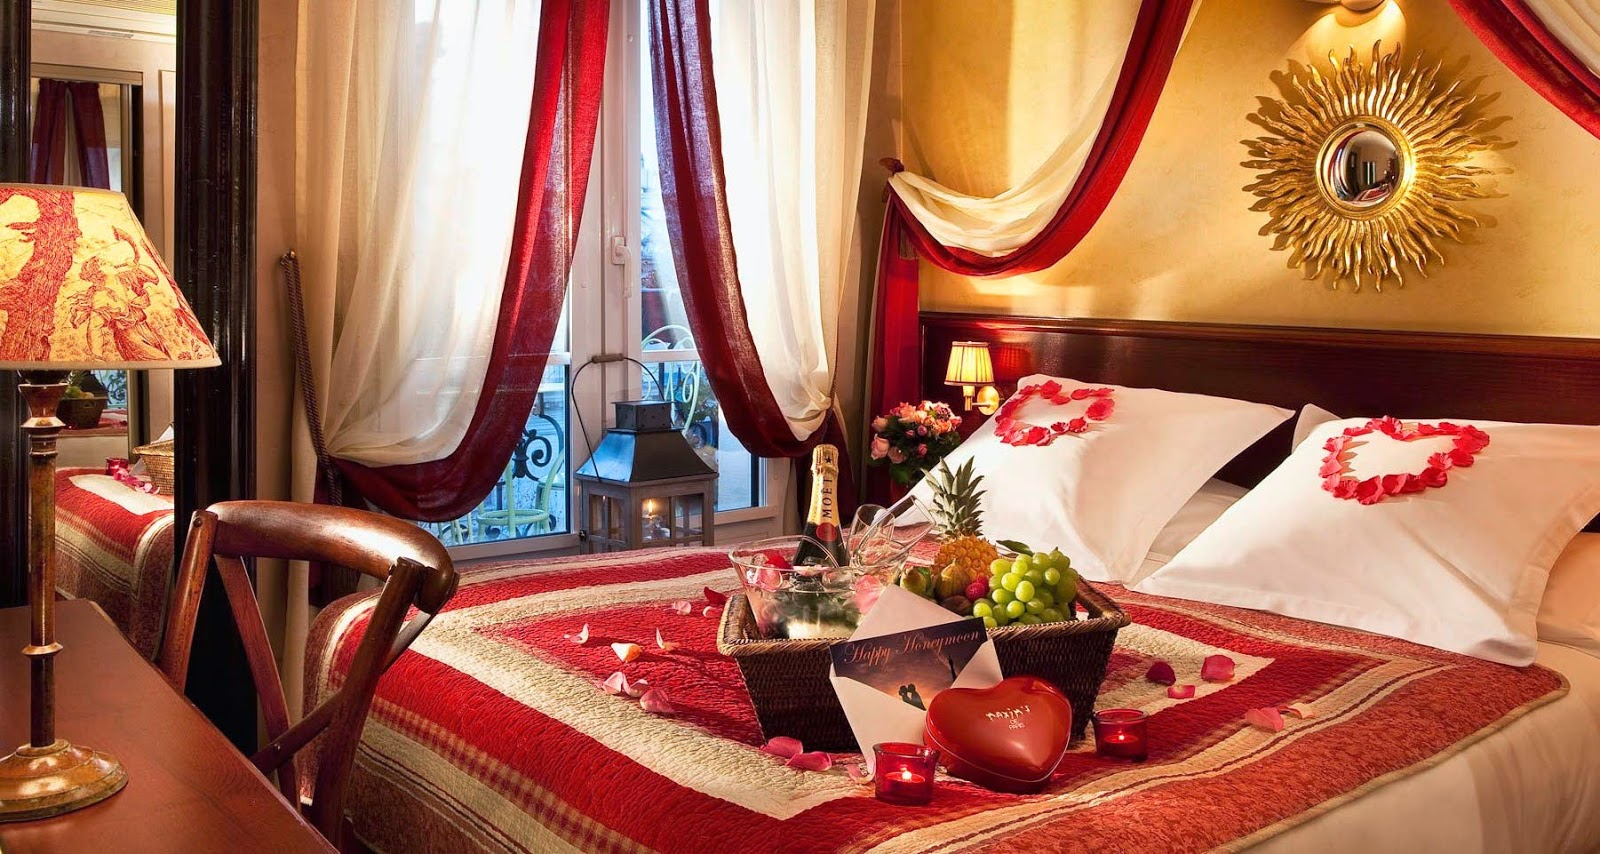 Bedroom ideas romantic setup organize your home How to make bedroom romantic